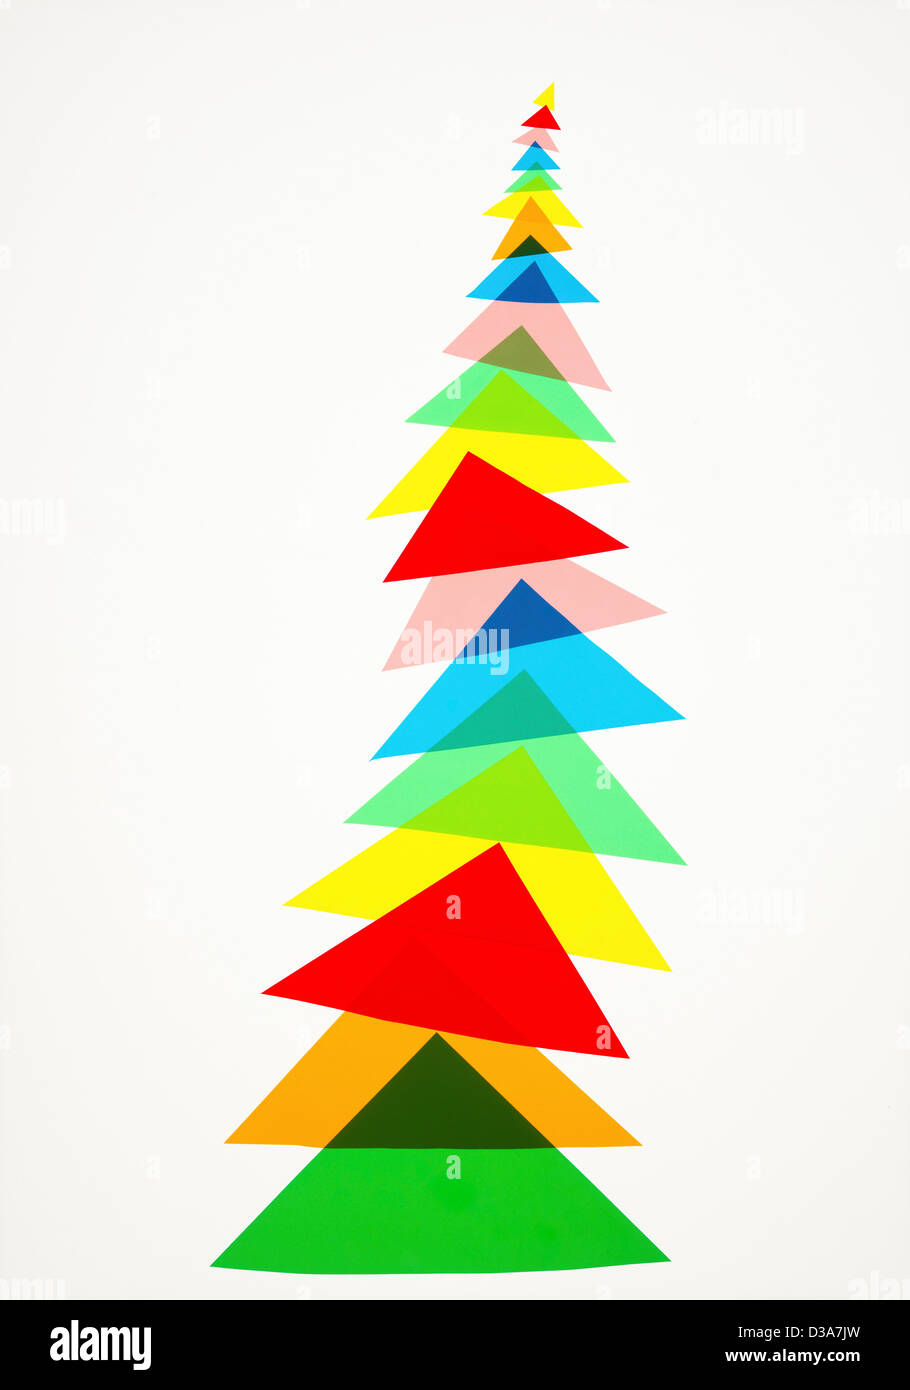 Illustration de triangles colorés Photo Stock